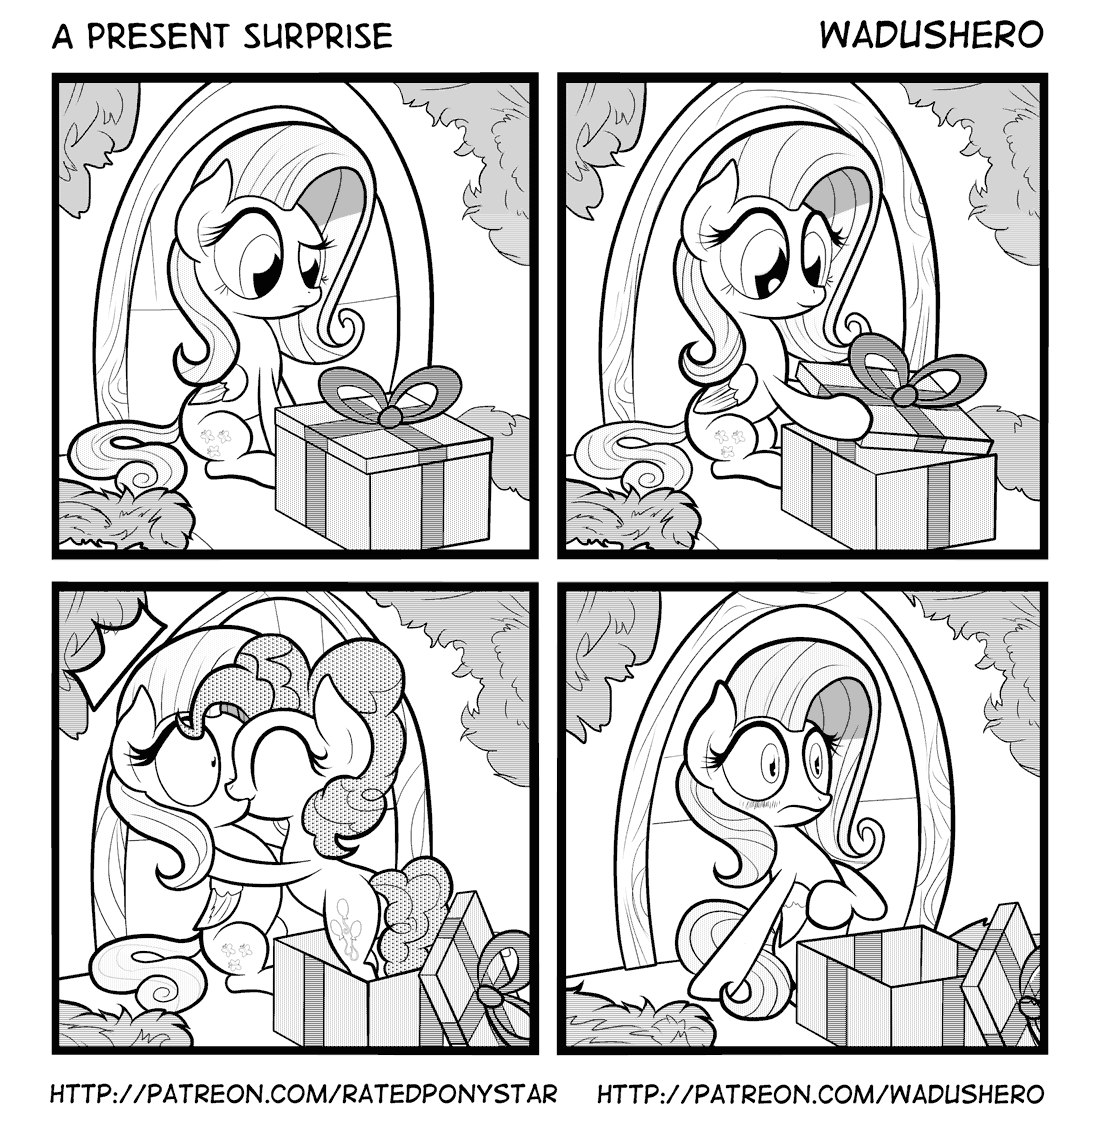 A Present Surprise by Wadusher0